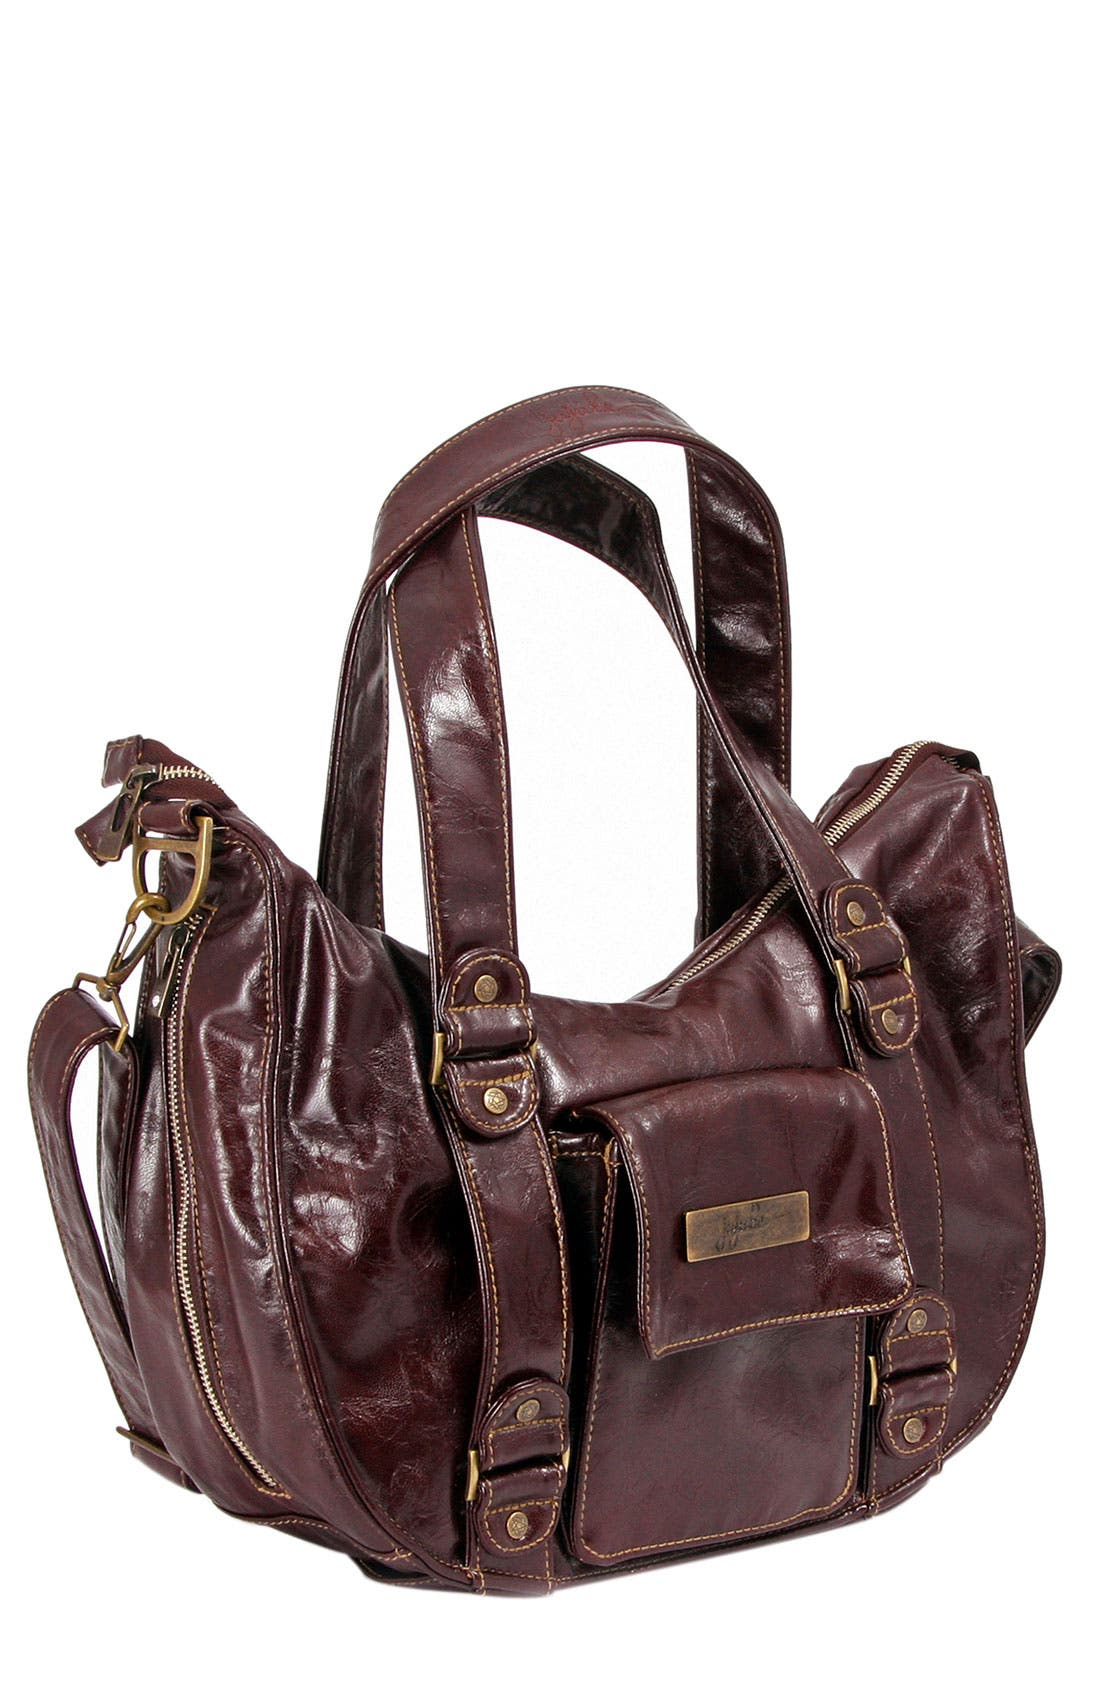 Alternate Image 1 Selected - Ju-Ju-Be 'Legacy' Earth Leather™ Faux Leather Diaper Bag